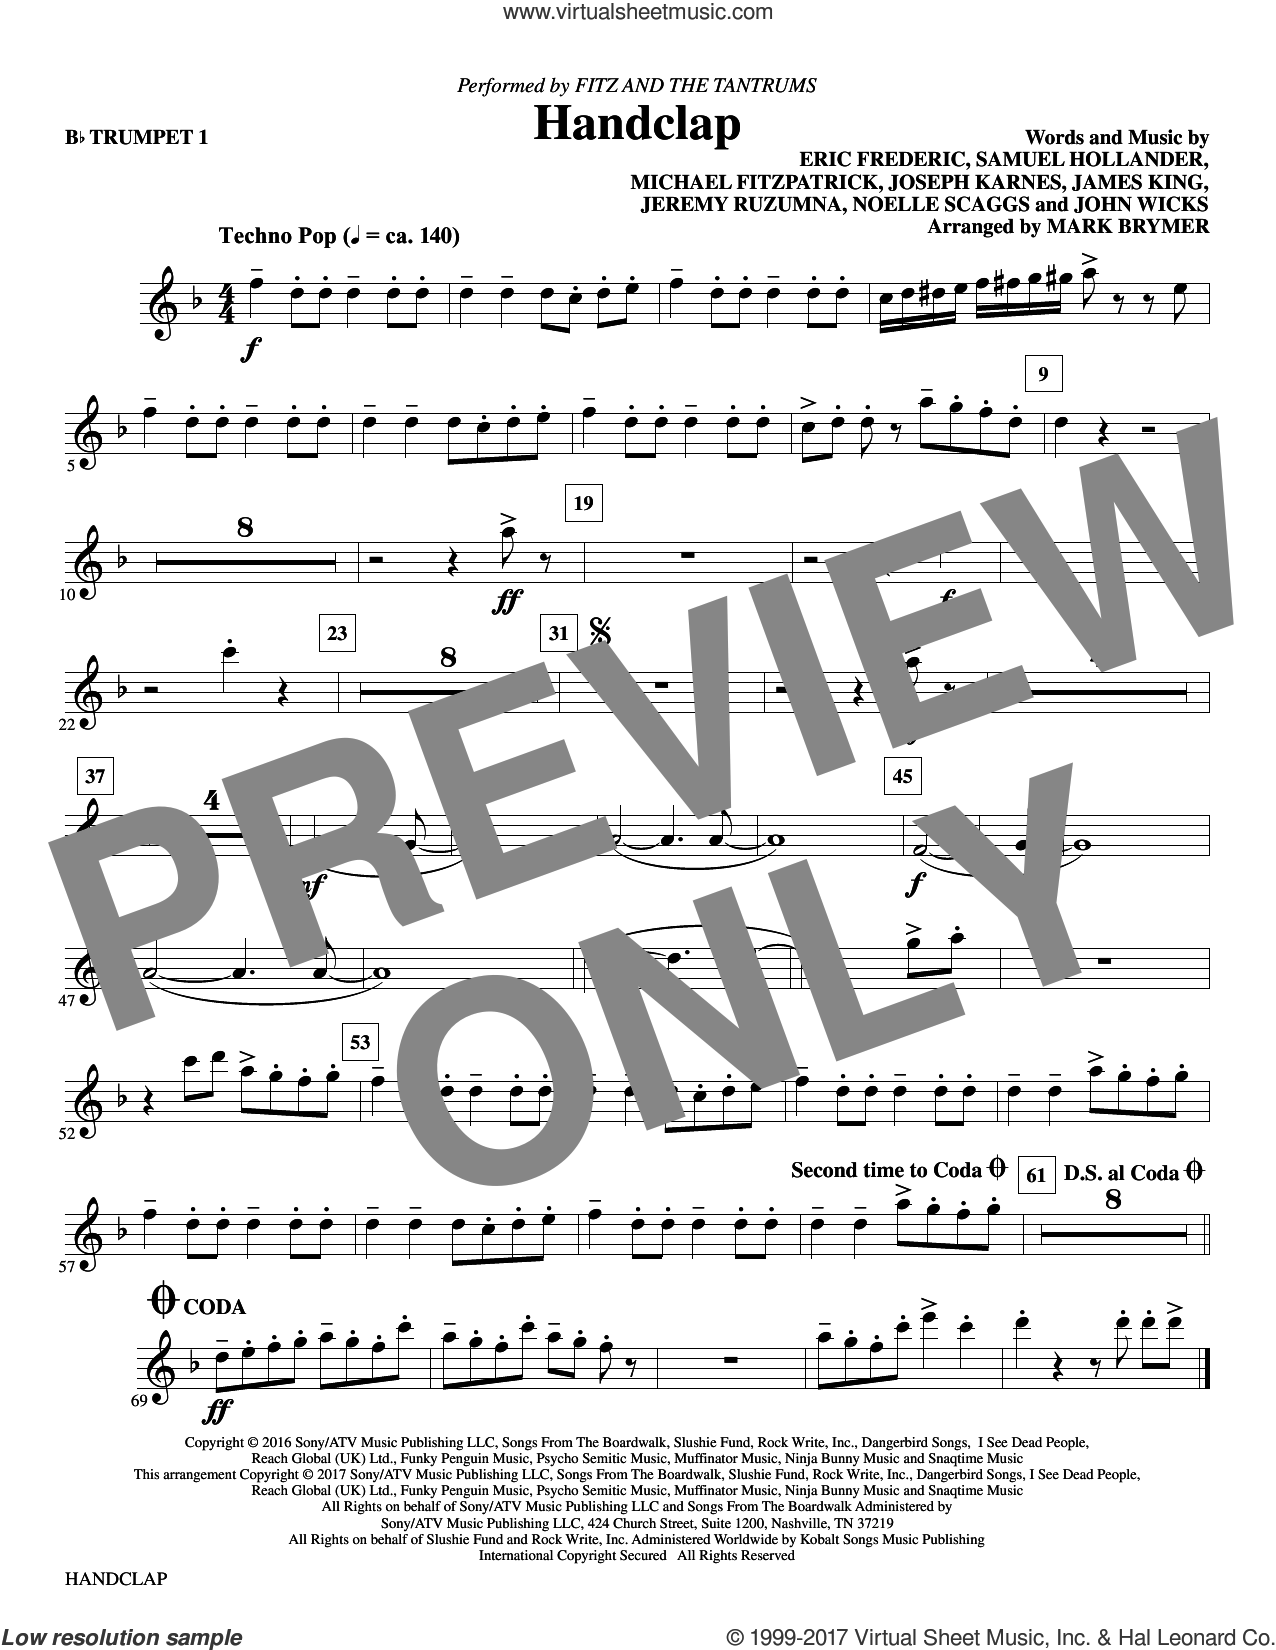 HandClap (arr. Mark Brymer) (complete set of parts) sheet music for orchestra/band by Mark Brymer, Eric Frederic, Fitz And The Tantrums, James King, Jeremy Ruzumna, John Wicks, Joseph Karnes, Michael Fitzpatrick, Noelle Scaggs and Sam Hollander, intermediate skill level